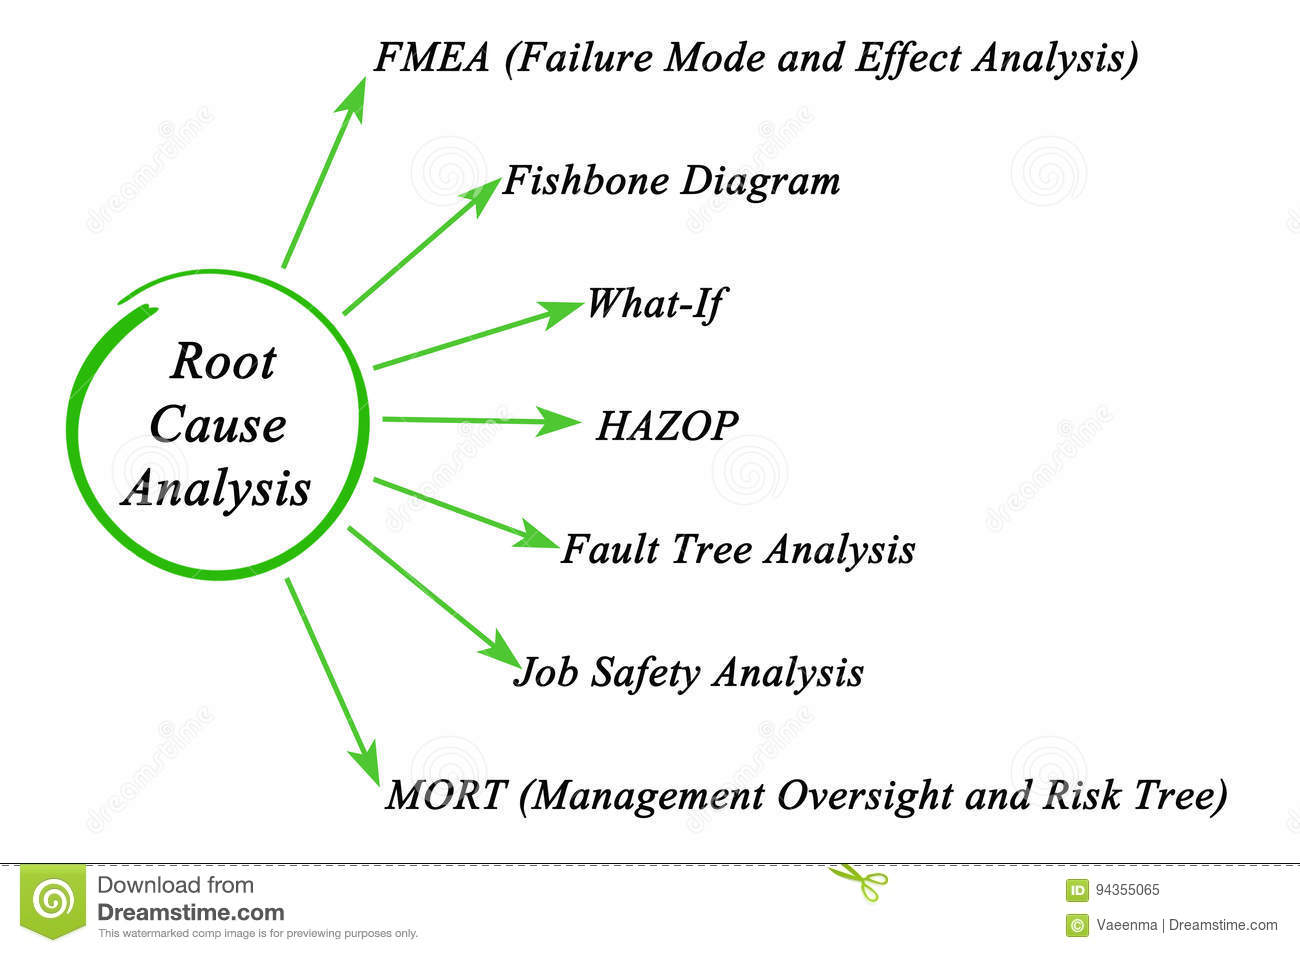 root cause failure analysis template - root cause analysis stock photos download 63 images